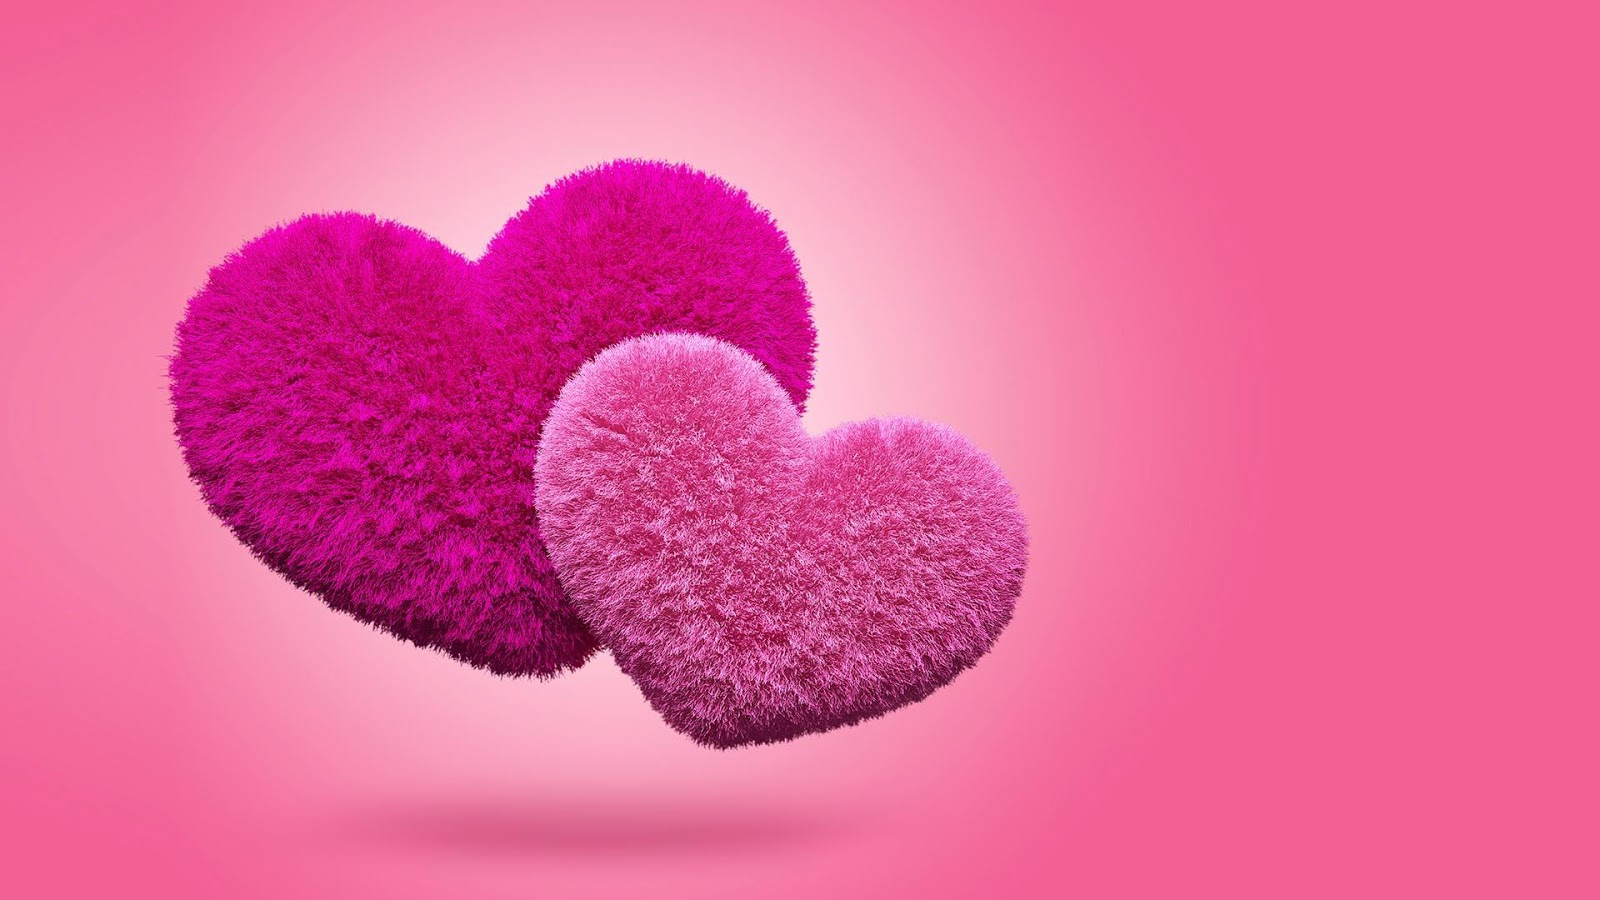 hearts live wallpaper offers you the cutest animated backgrounds 1600x900